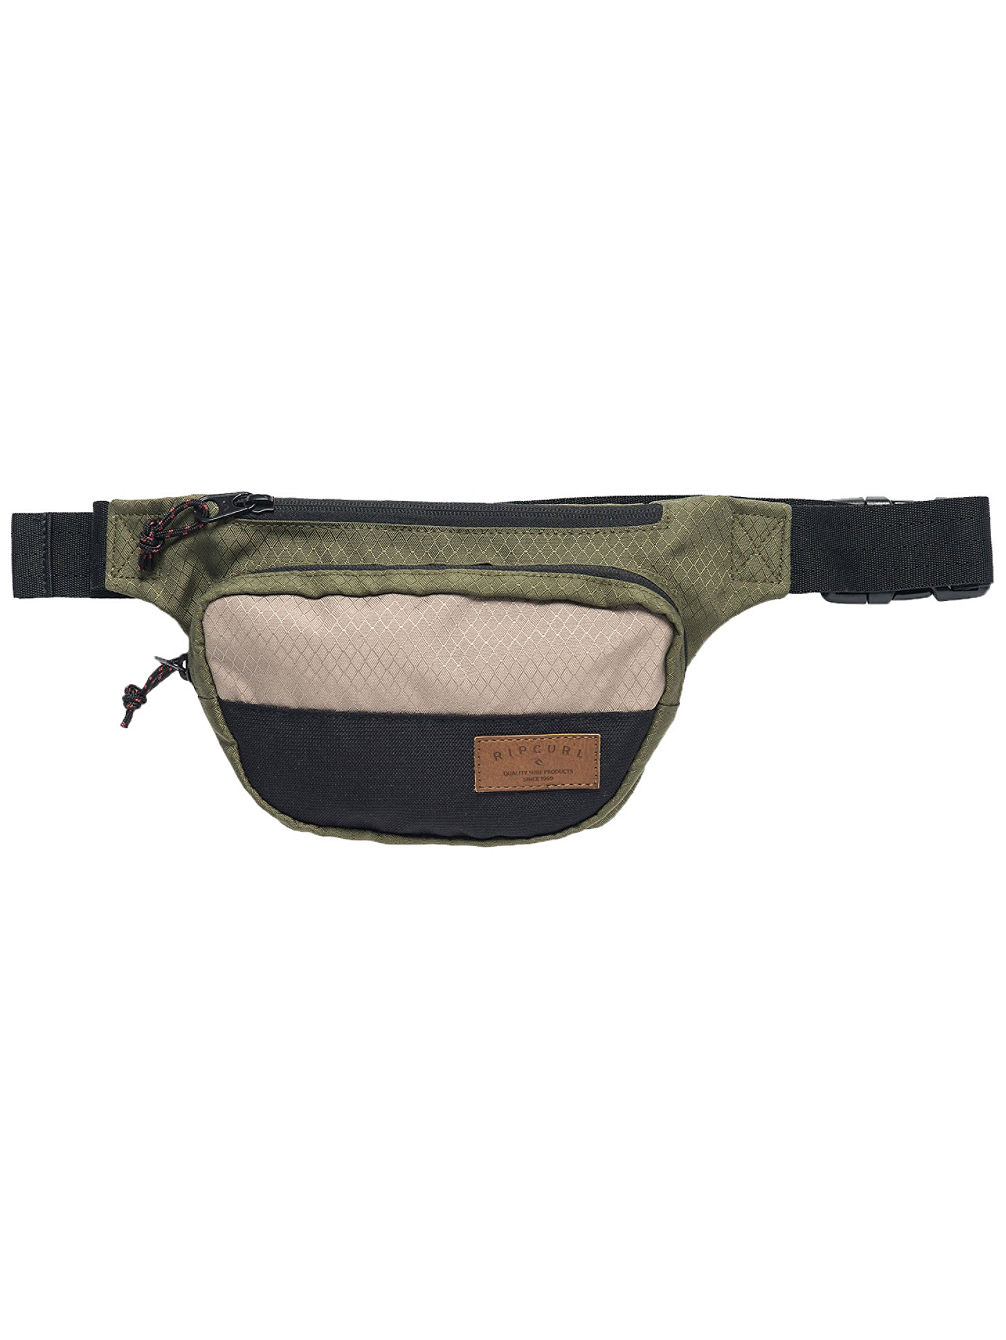 Stacka Waist Bag